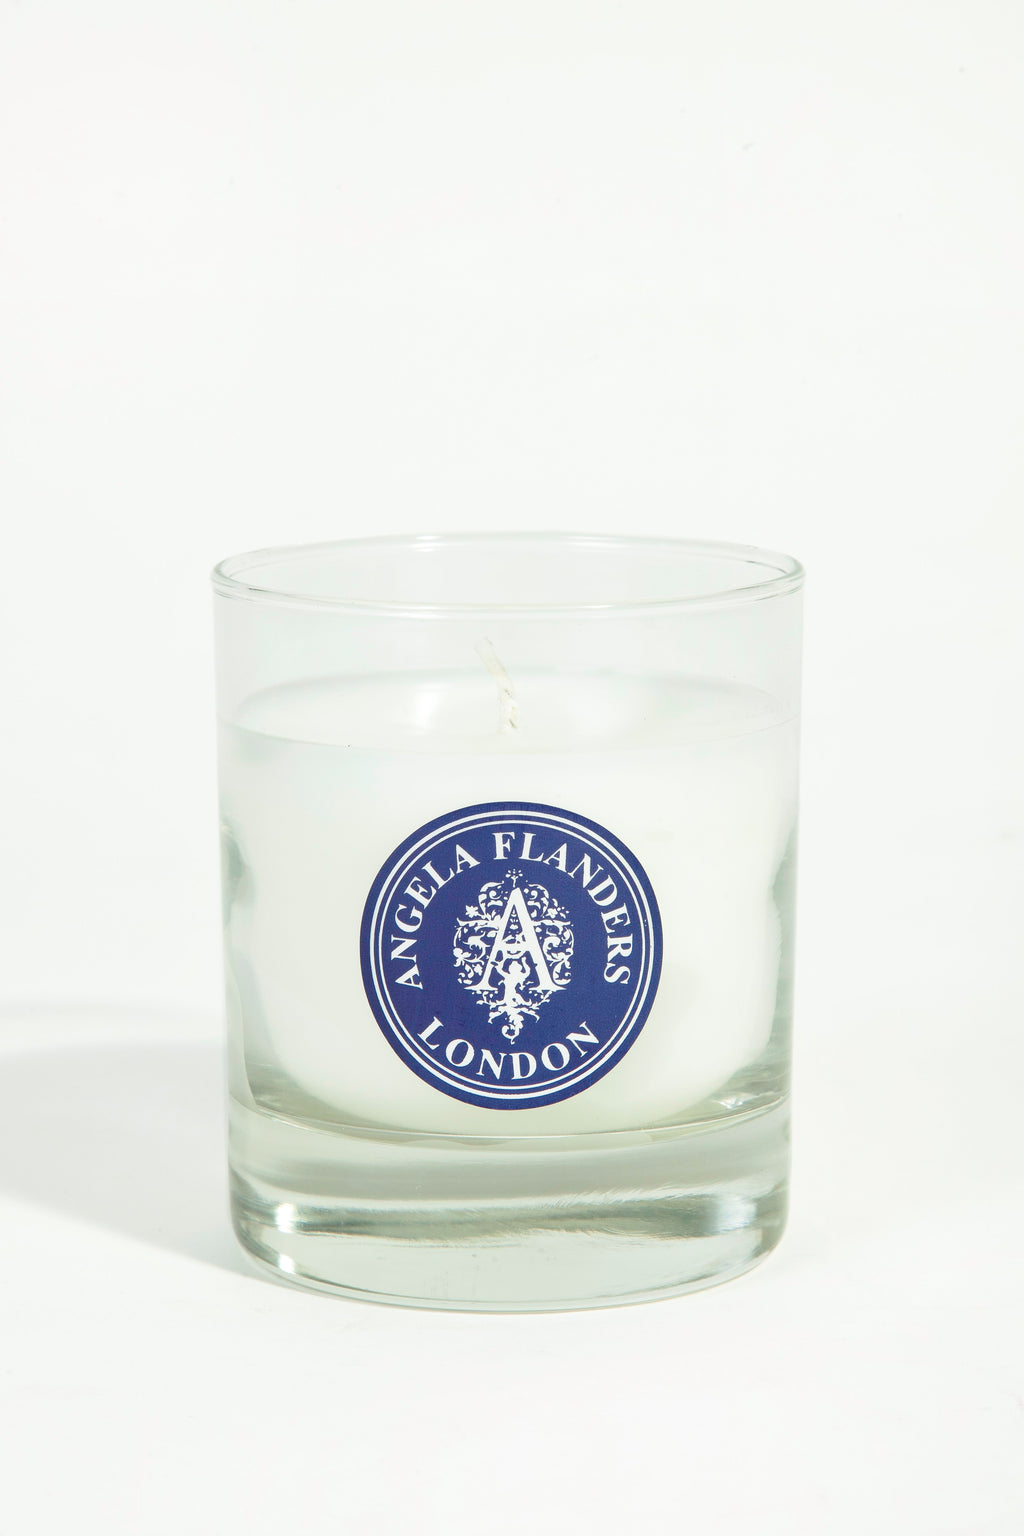 Angela Flanders Lavender & Chamomile Candle